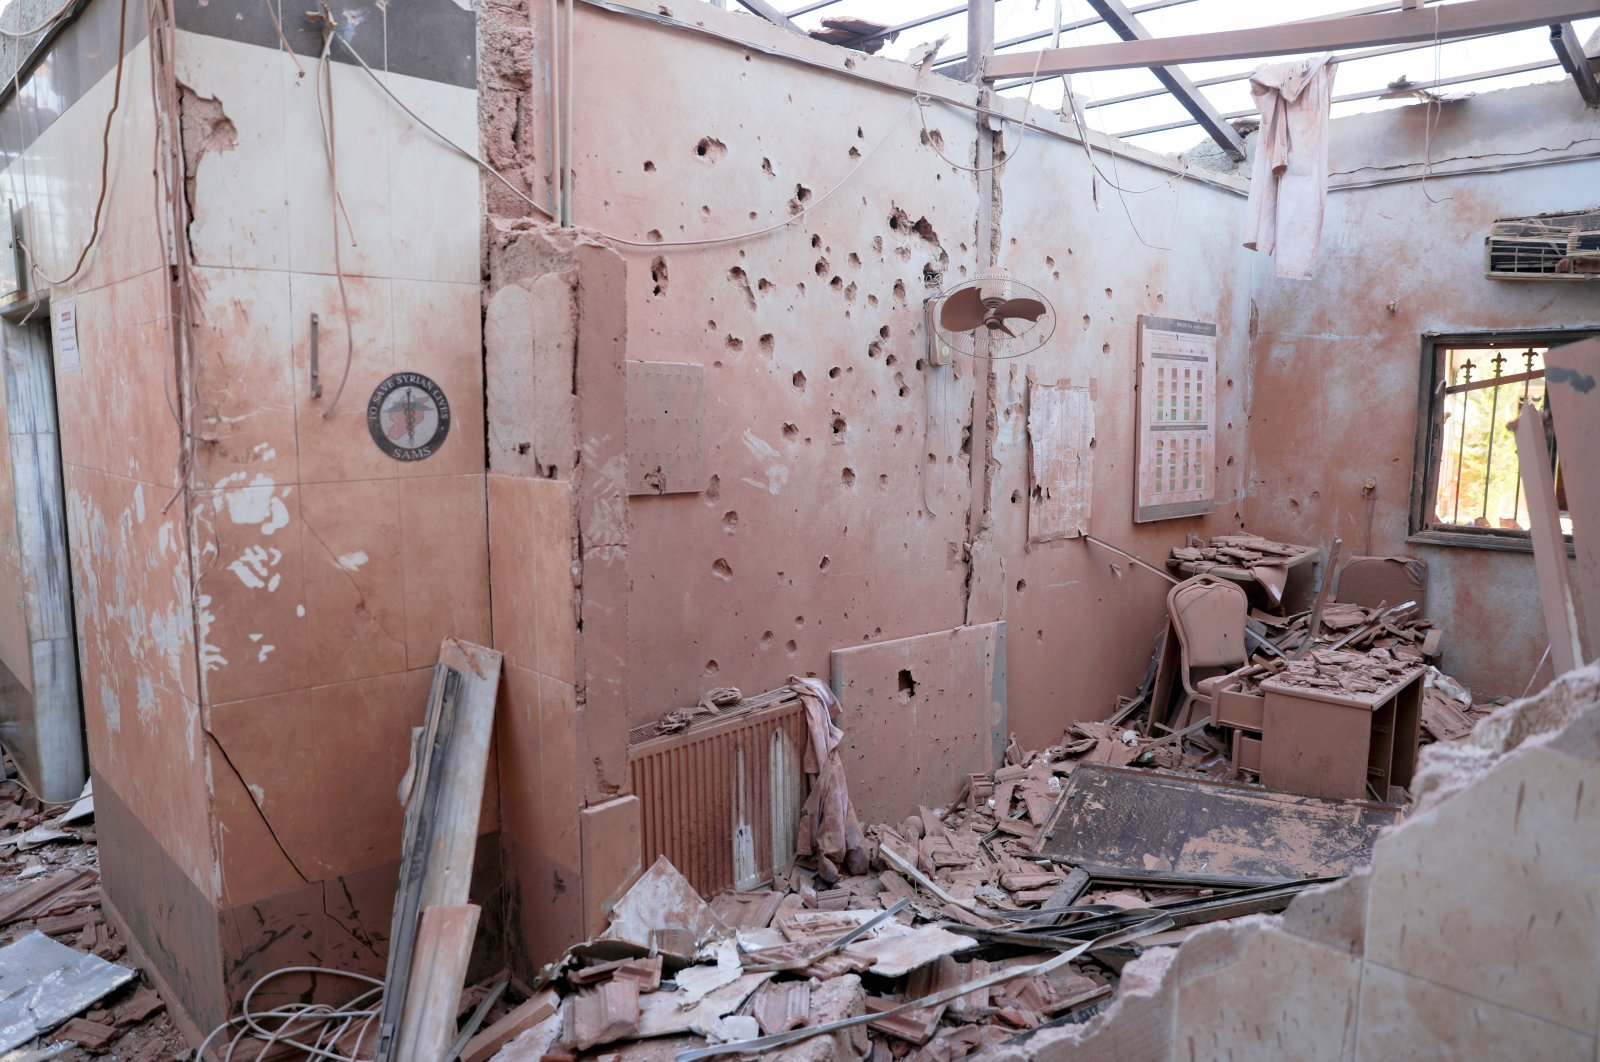 The aftermath of the attack on Al-Shifa Hospital in the city of Afrin, northern Syria, June 13, 2021. (EPA Photo)